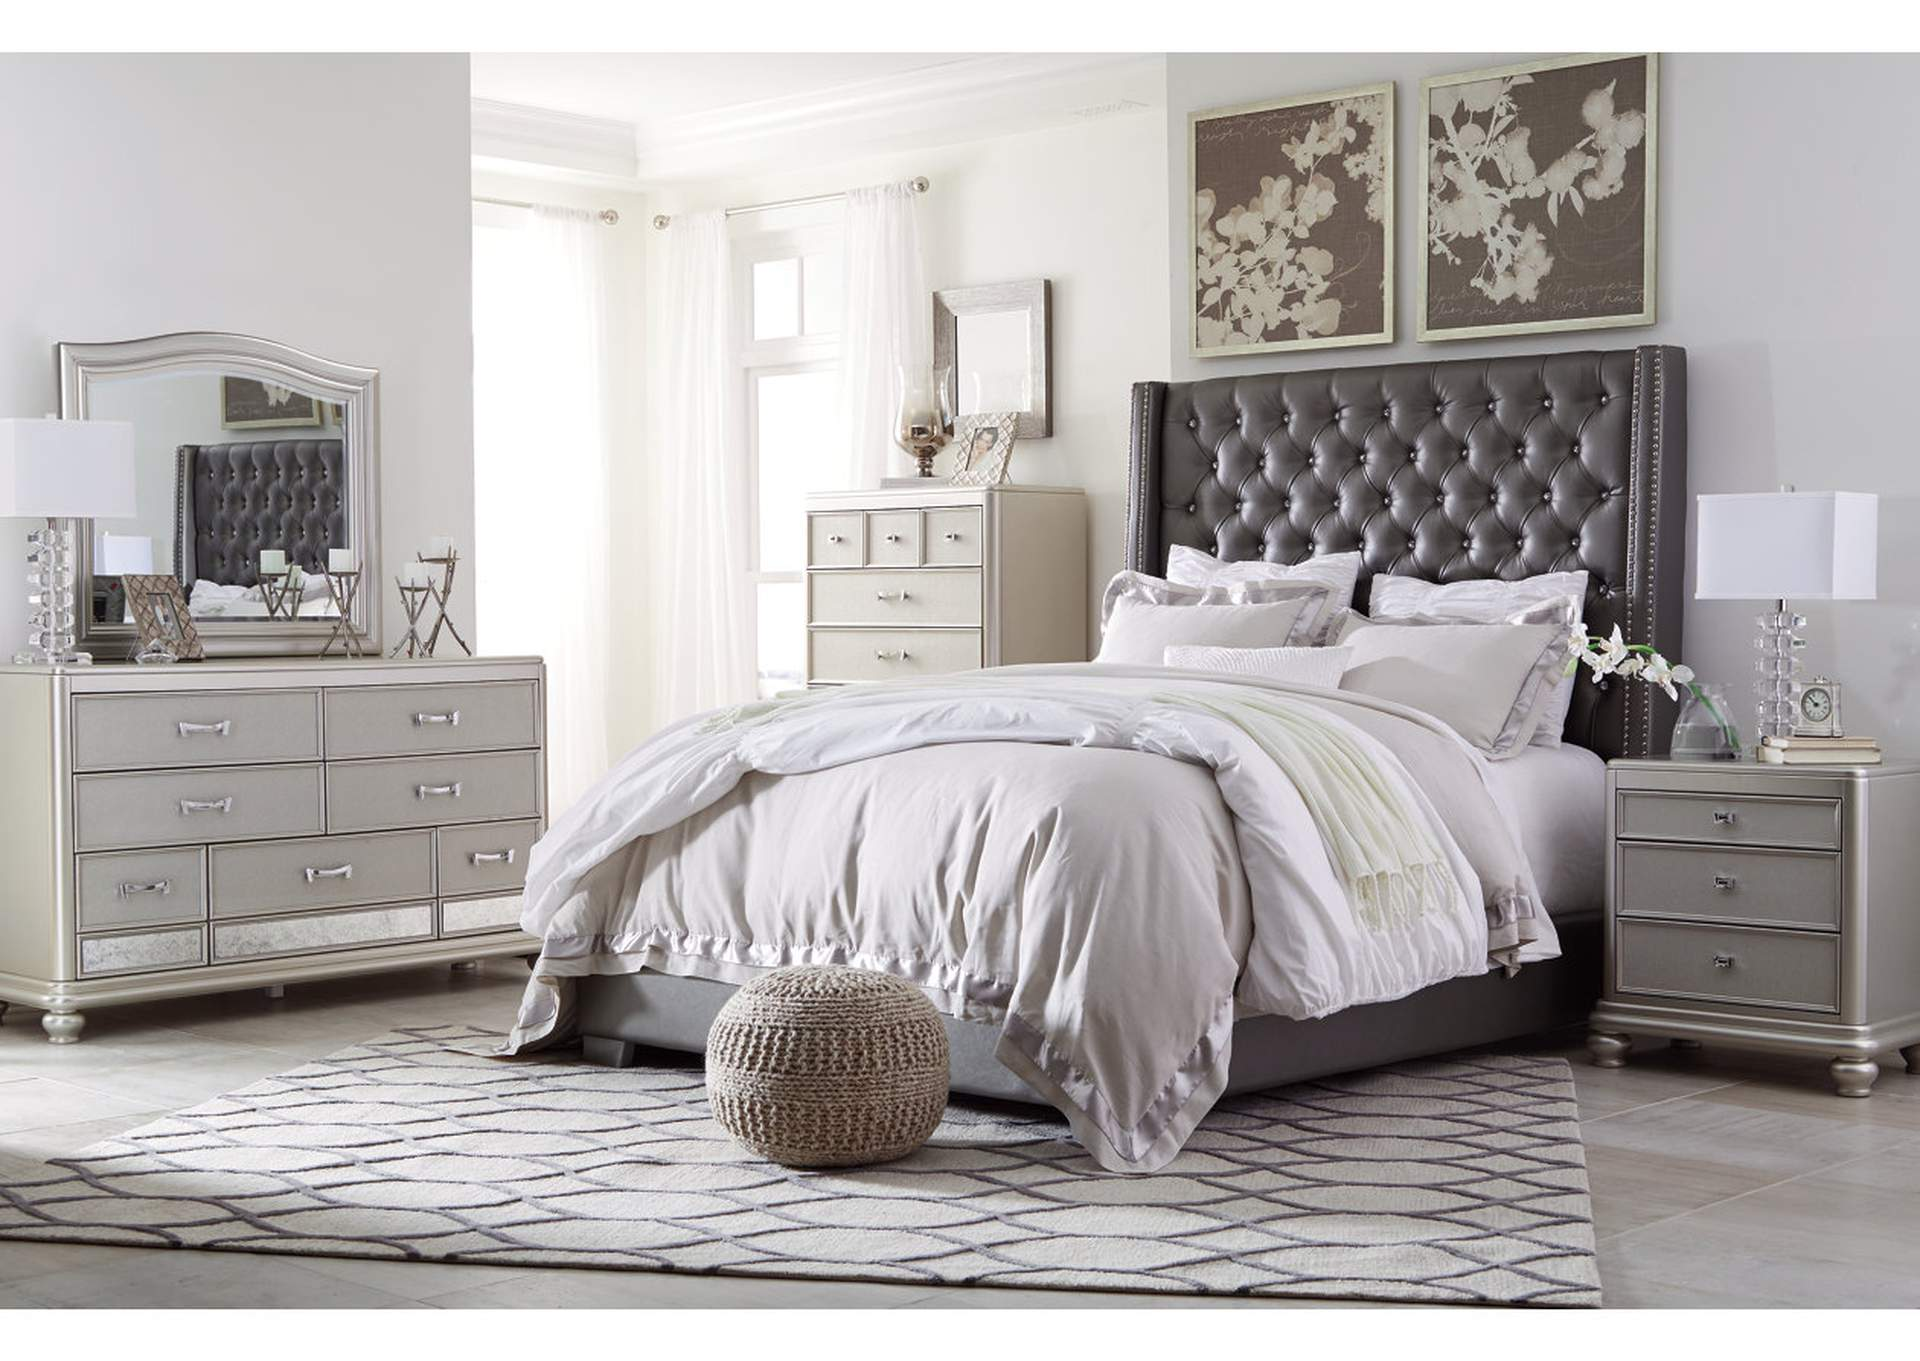 Coralayne Gray Queen Upholstered Bed w/Dresser, Mirror & Nightstand,Signature Design By Ashley